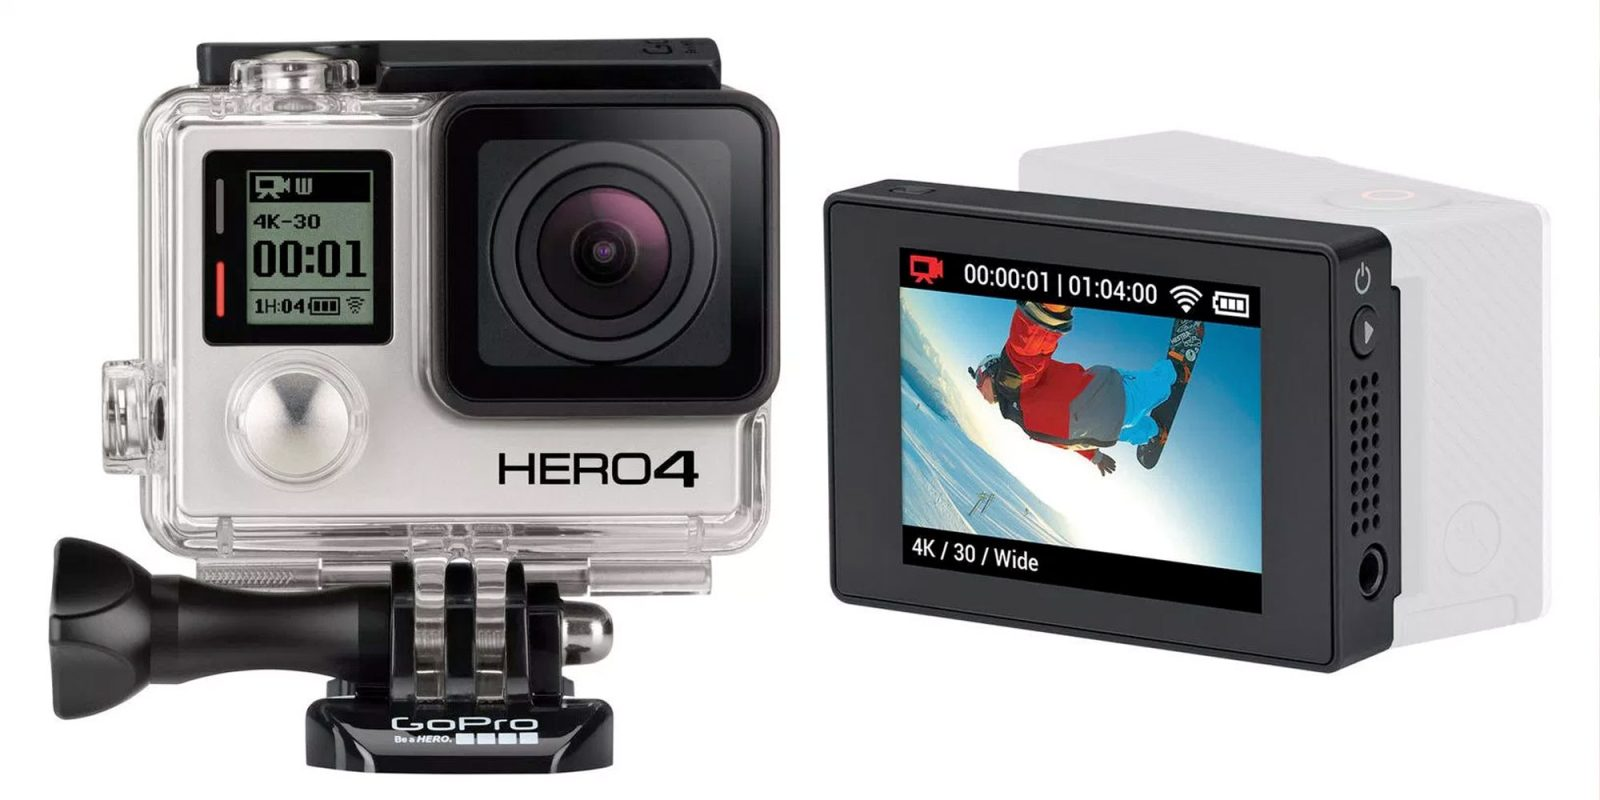 GoPro's HERO4 Black action camera shoots 4K for $88 (Refurb, Orig. $449)